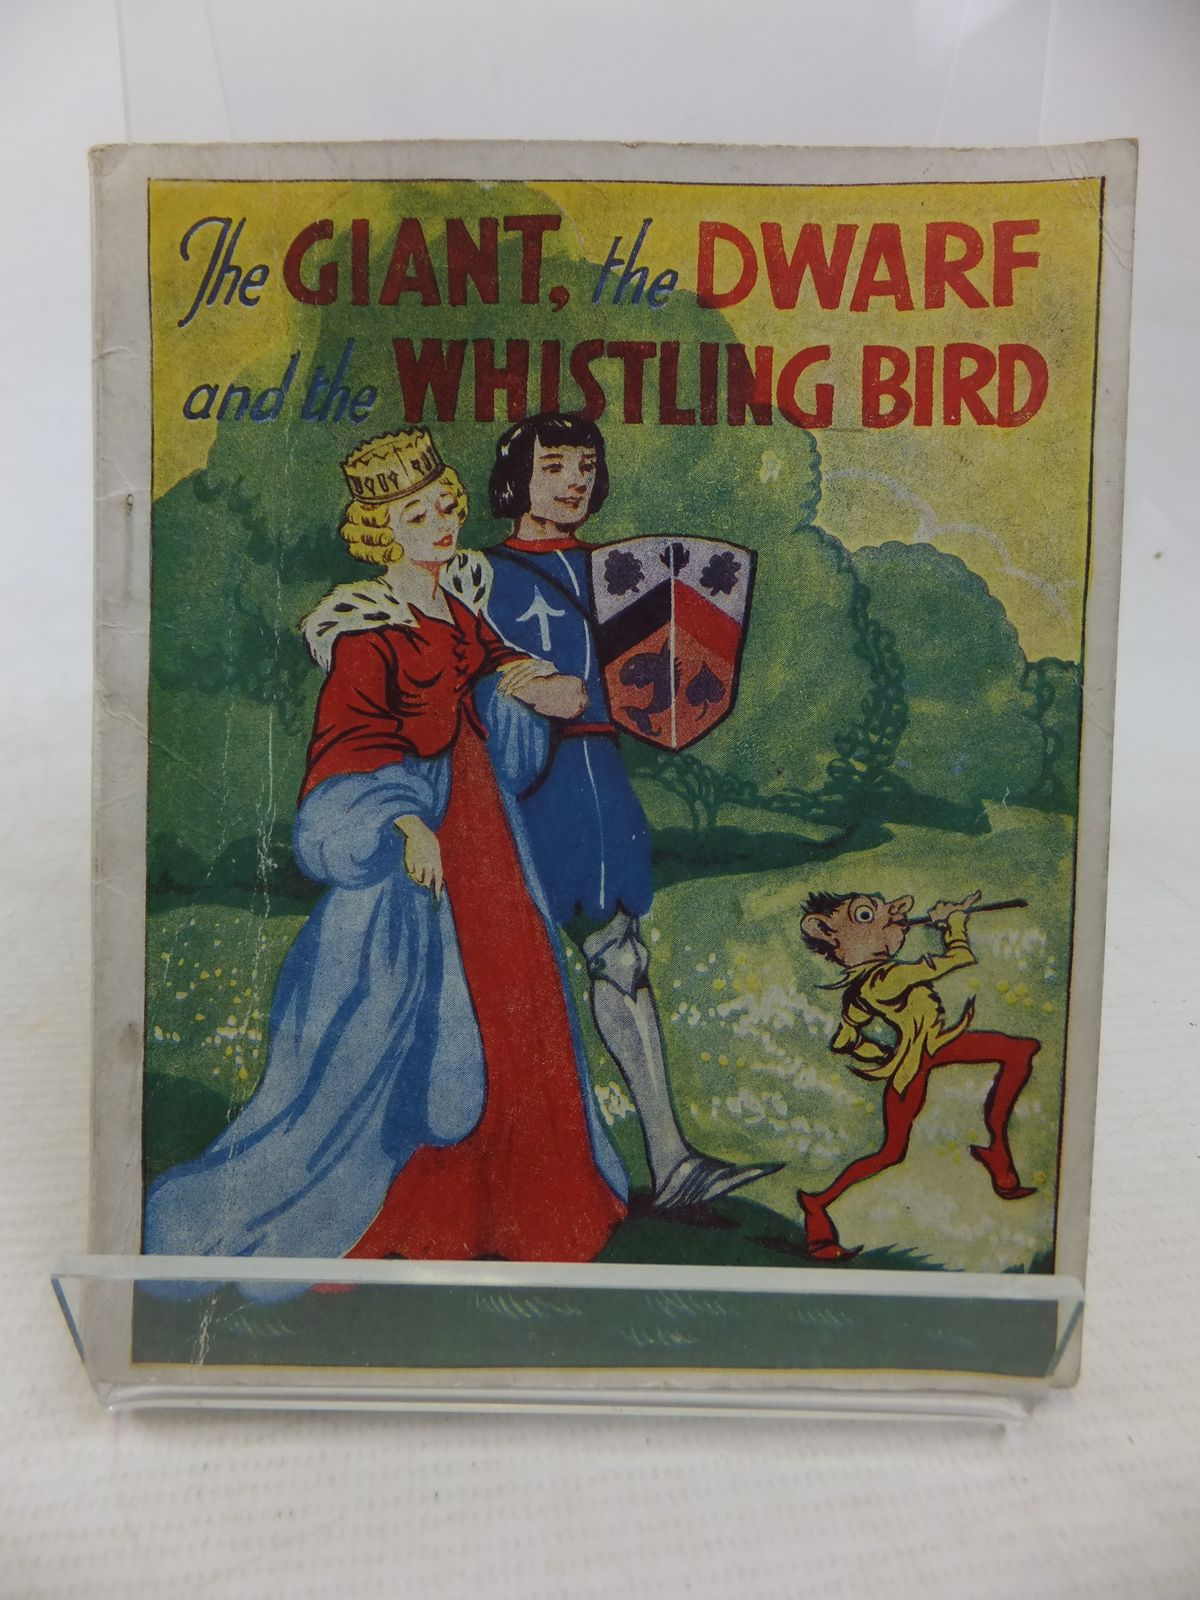 Photo of THE GIANT, THE DWARF AND THE WHISTLING BIRD illustrated by Edgecombe Jenkins, V. published by The Featherstone Press Ltd. (STOCK CODE: 1809779)  for sale by Stella & Rose's Books